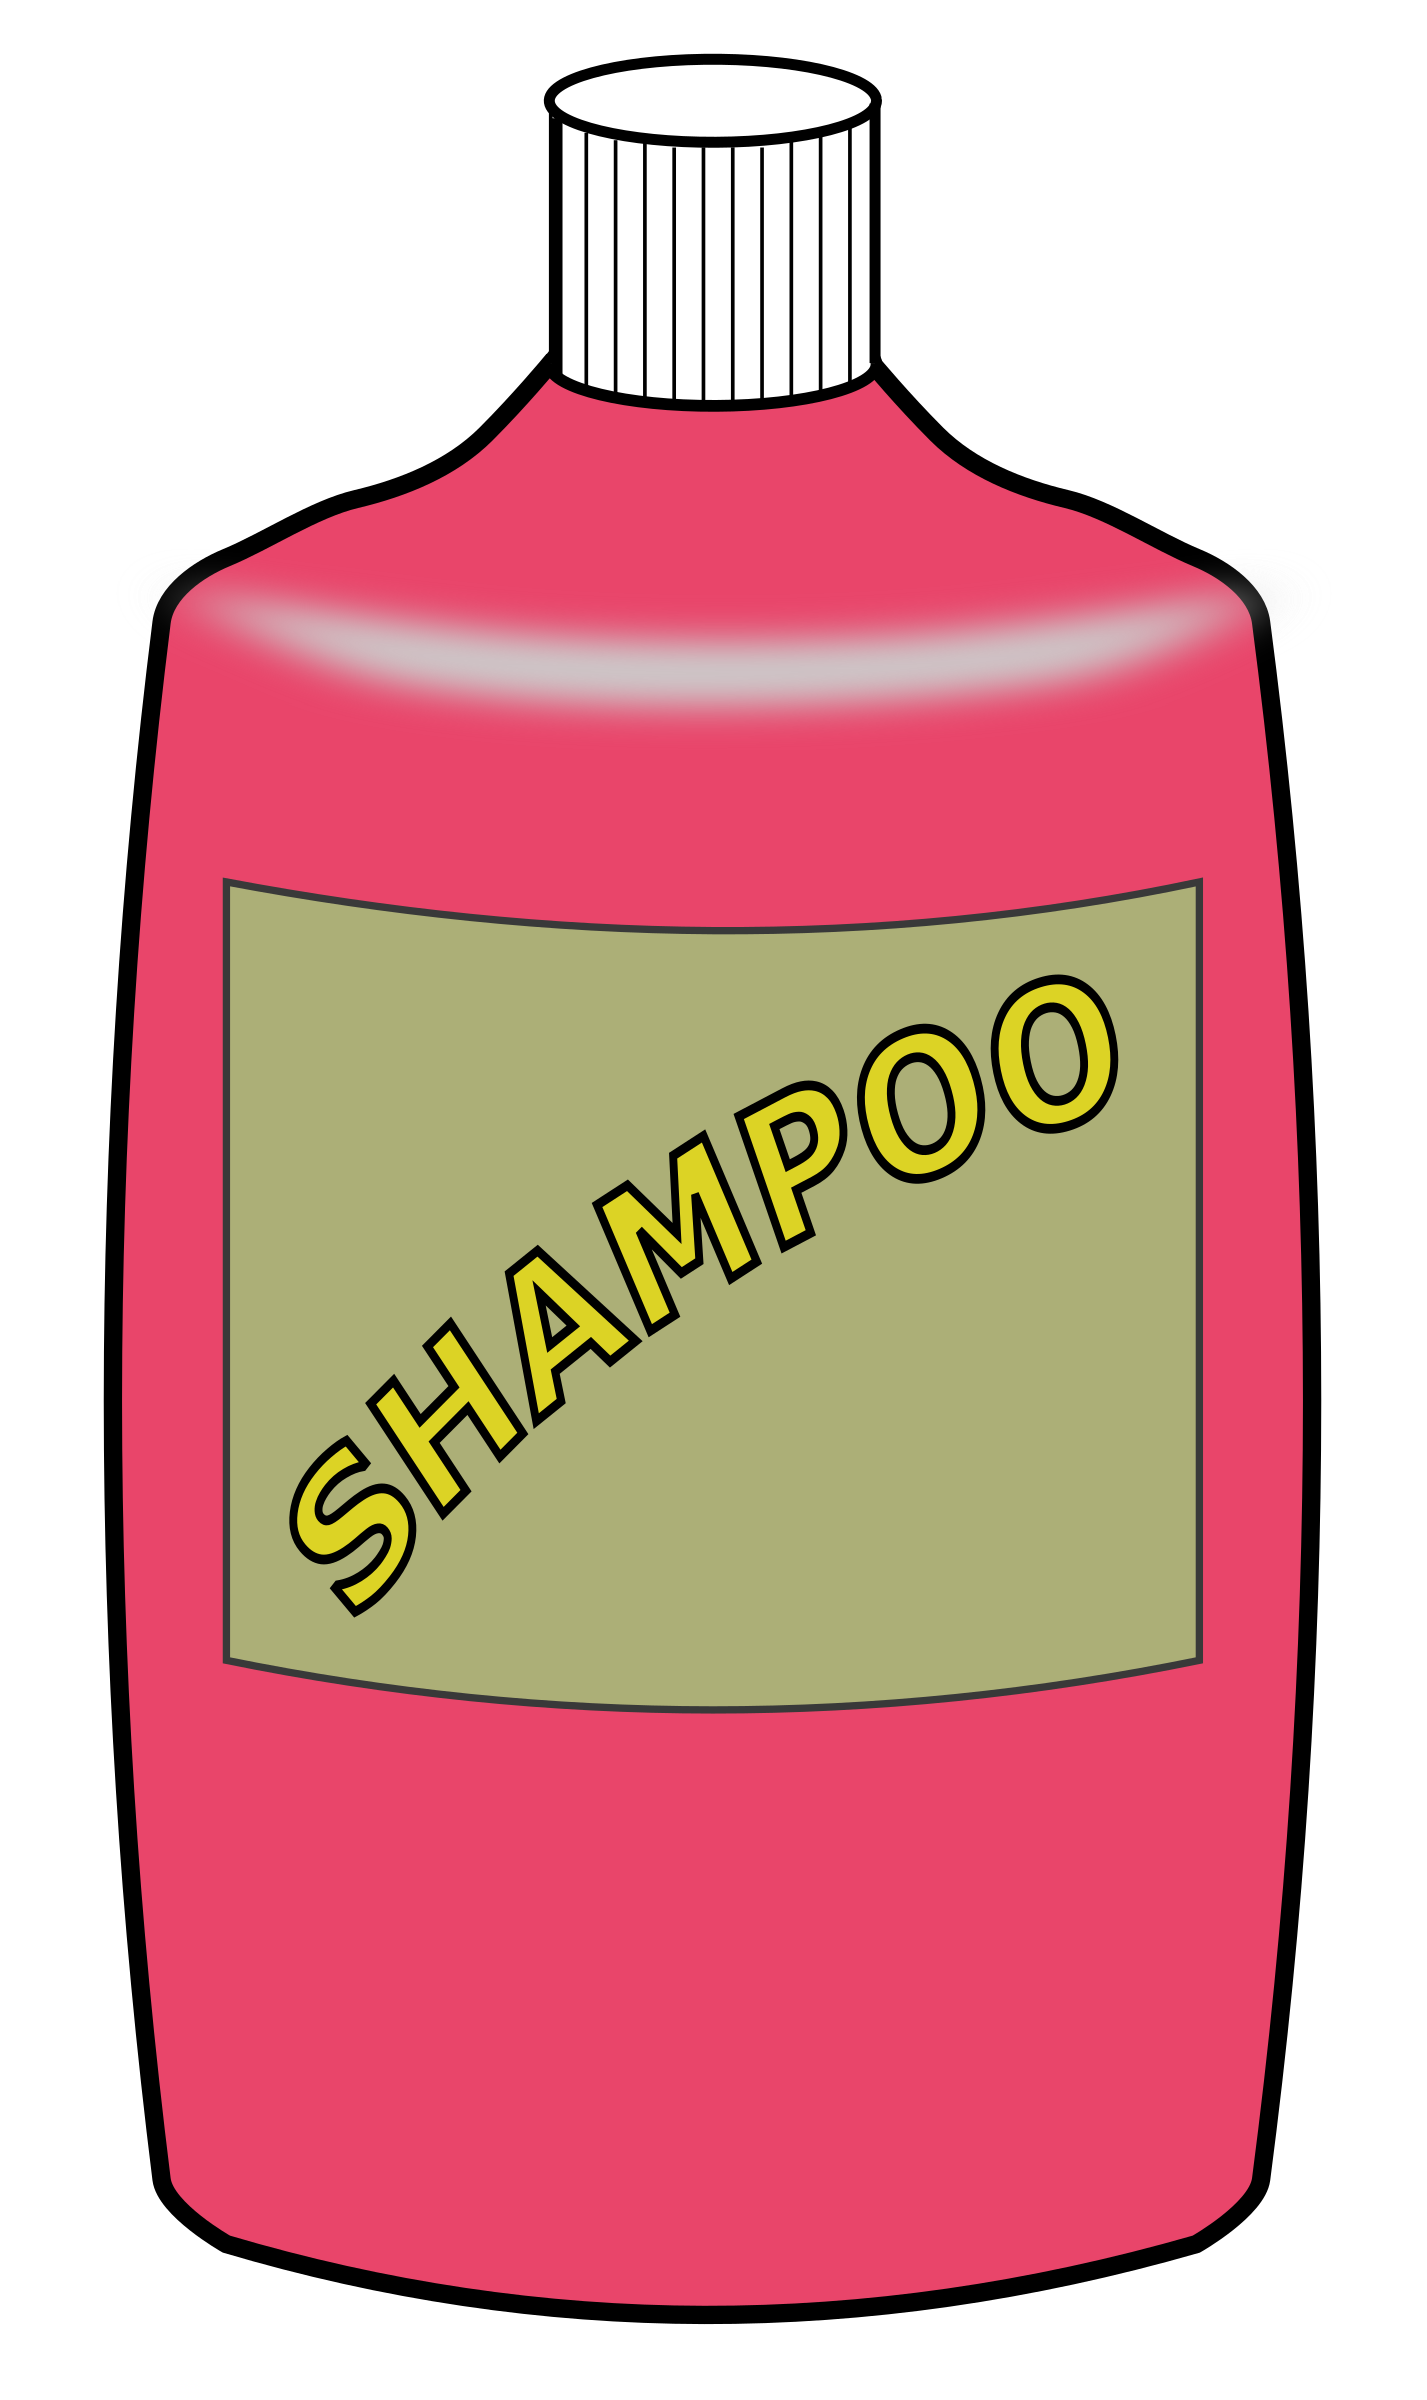 vector free Big bottle image png. Shampoo clipart